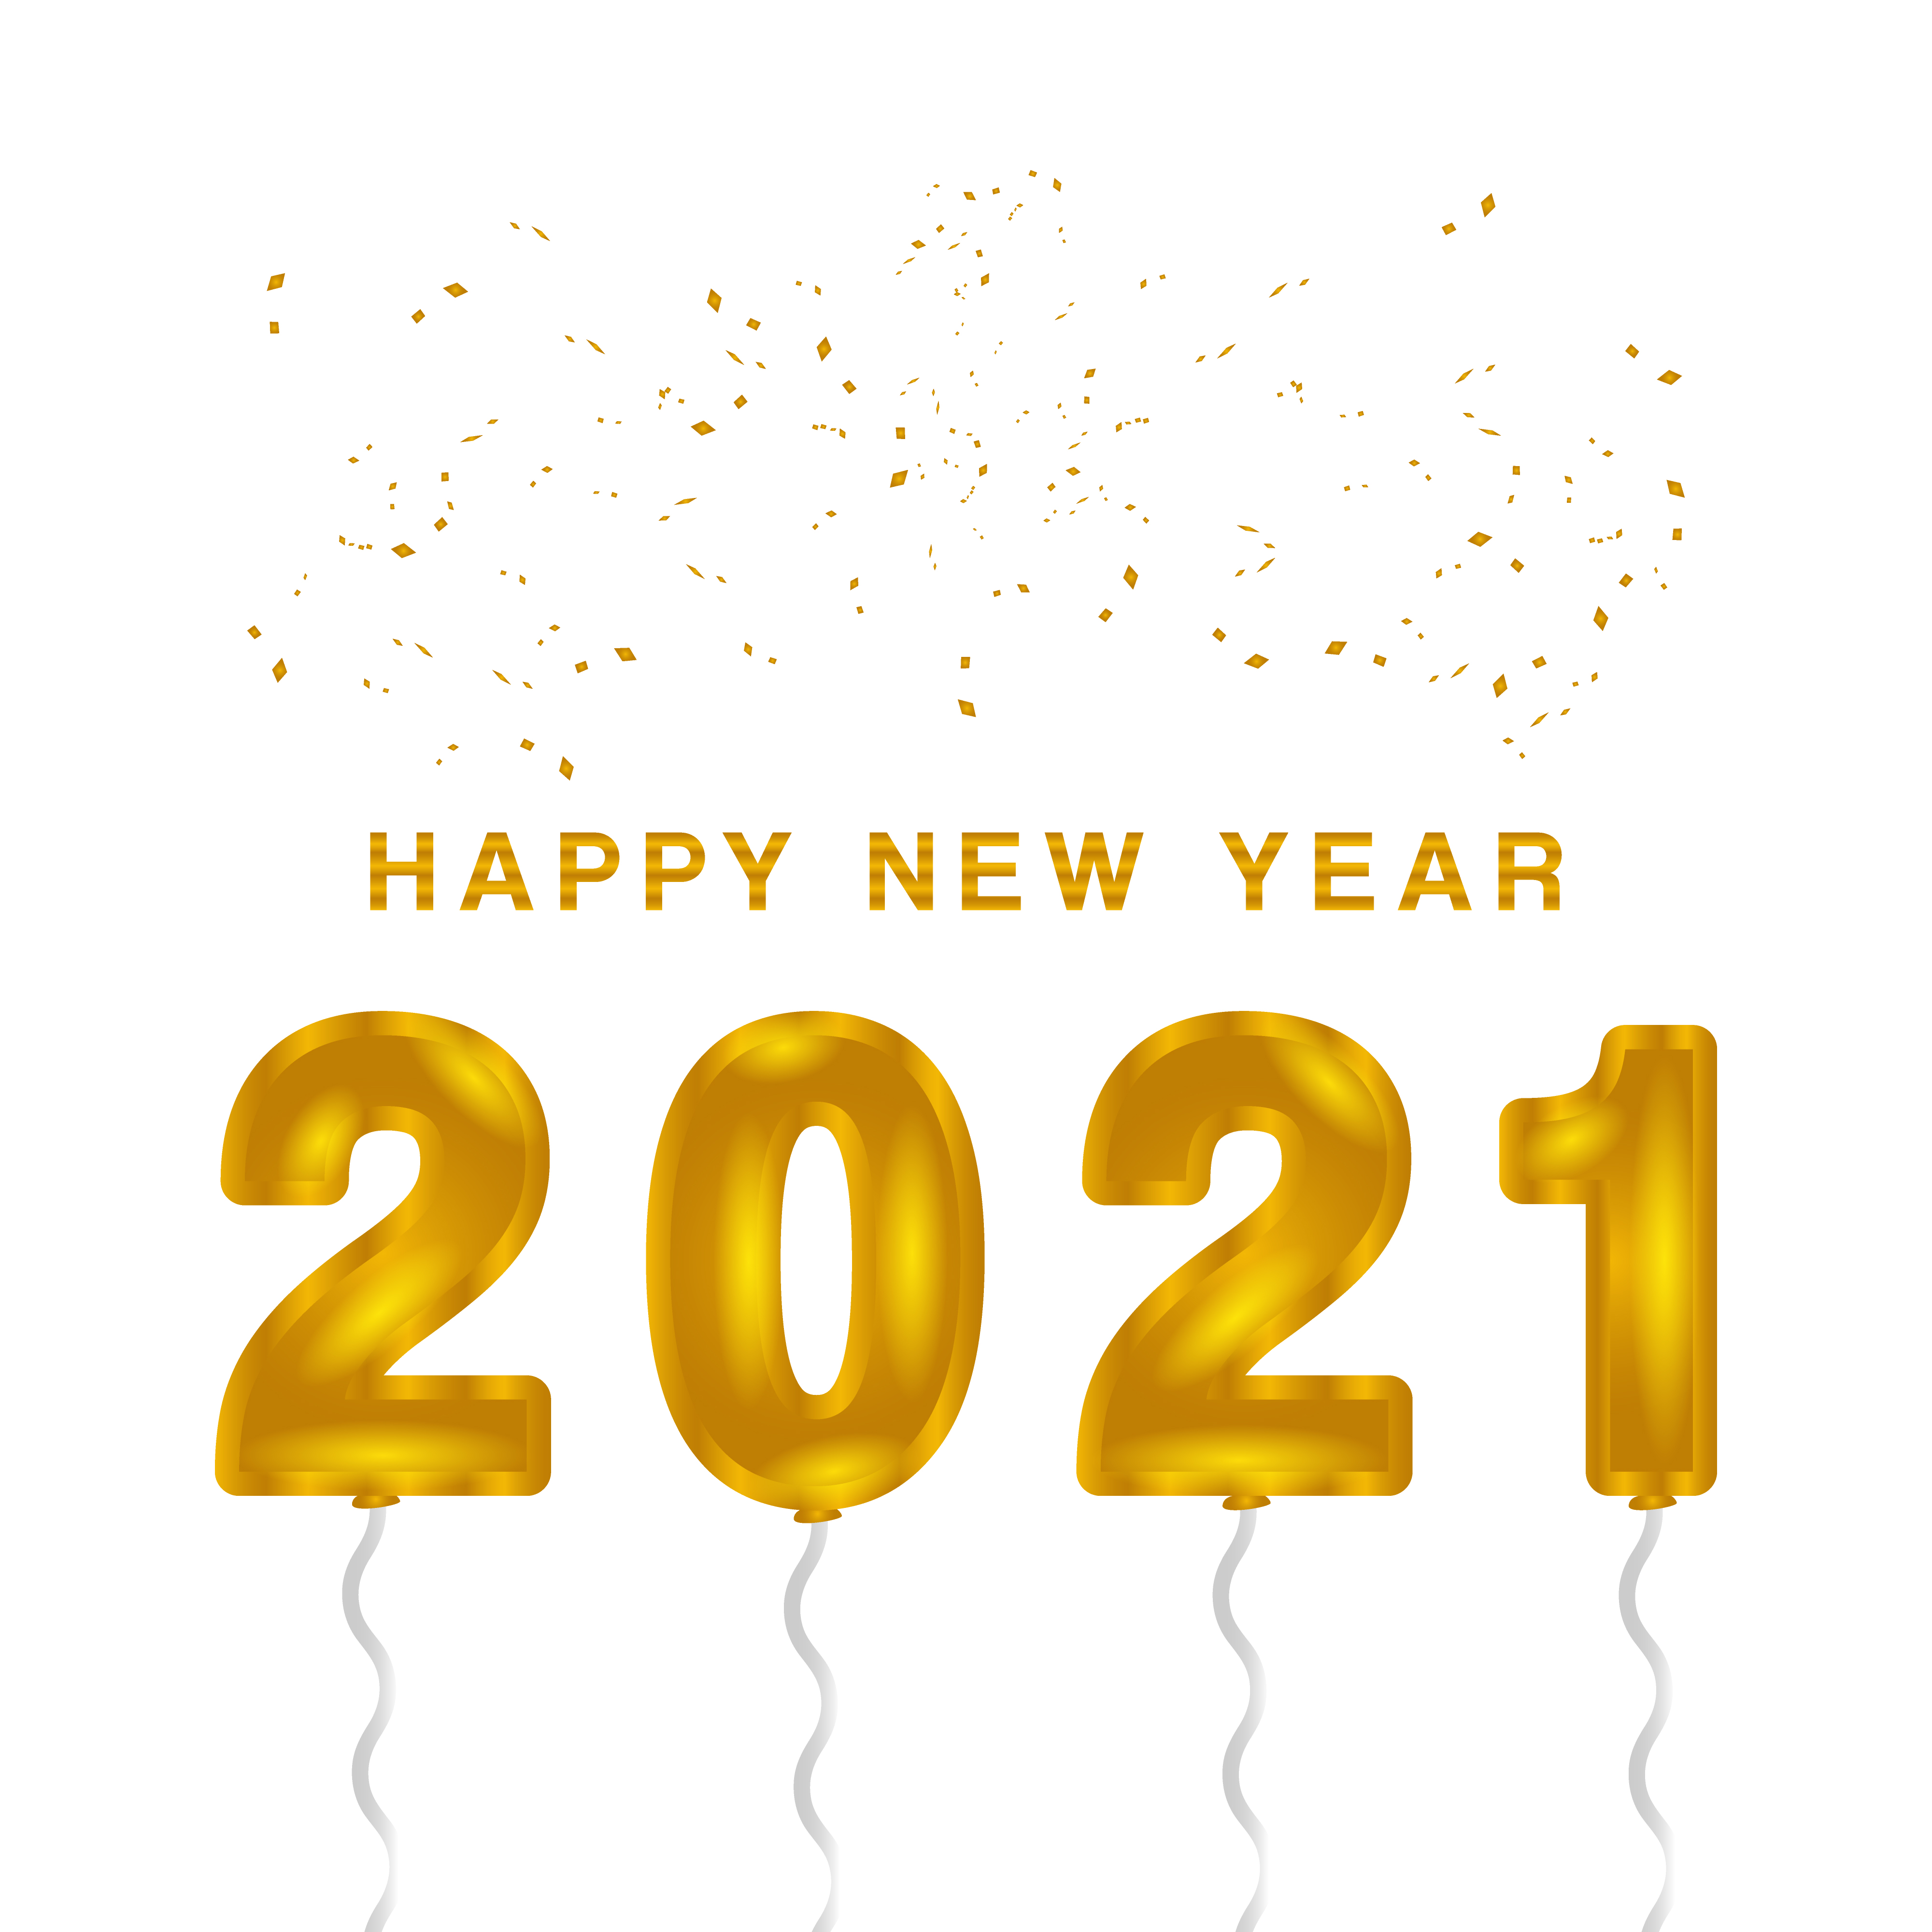 Happy new year 2021 balloons with glitter - Download Free ...